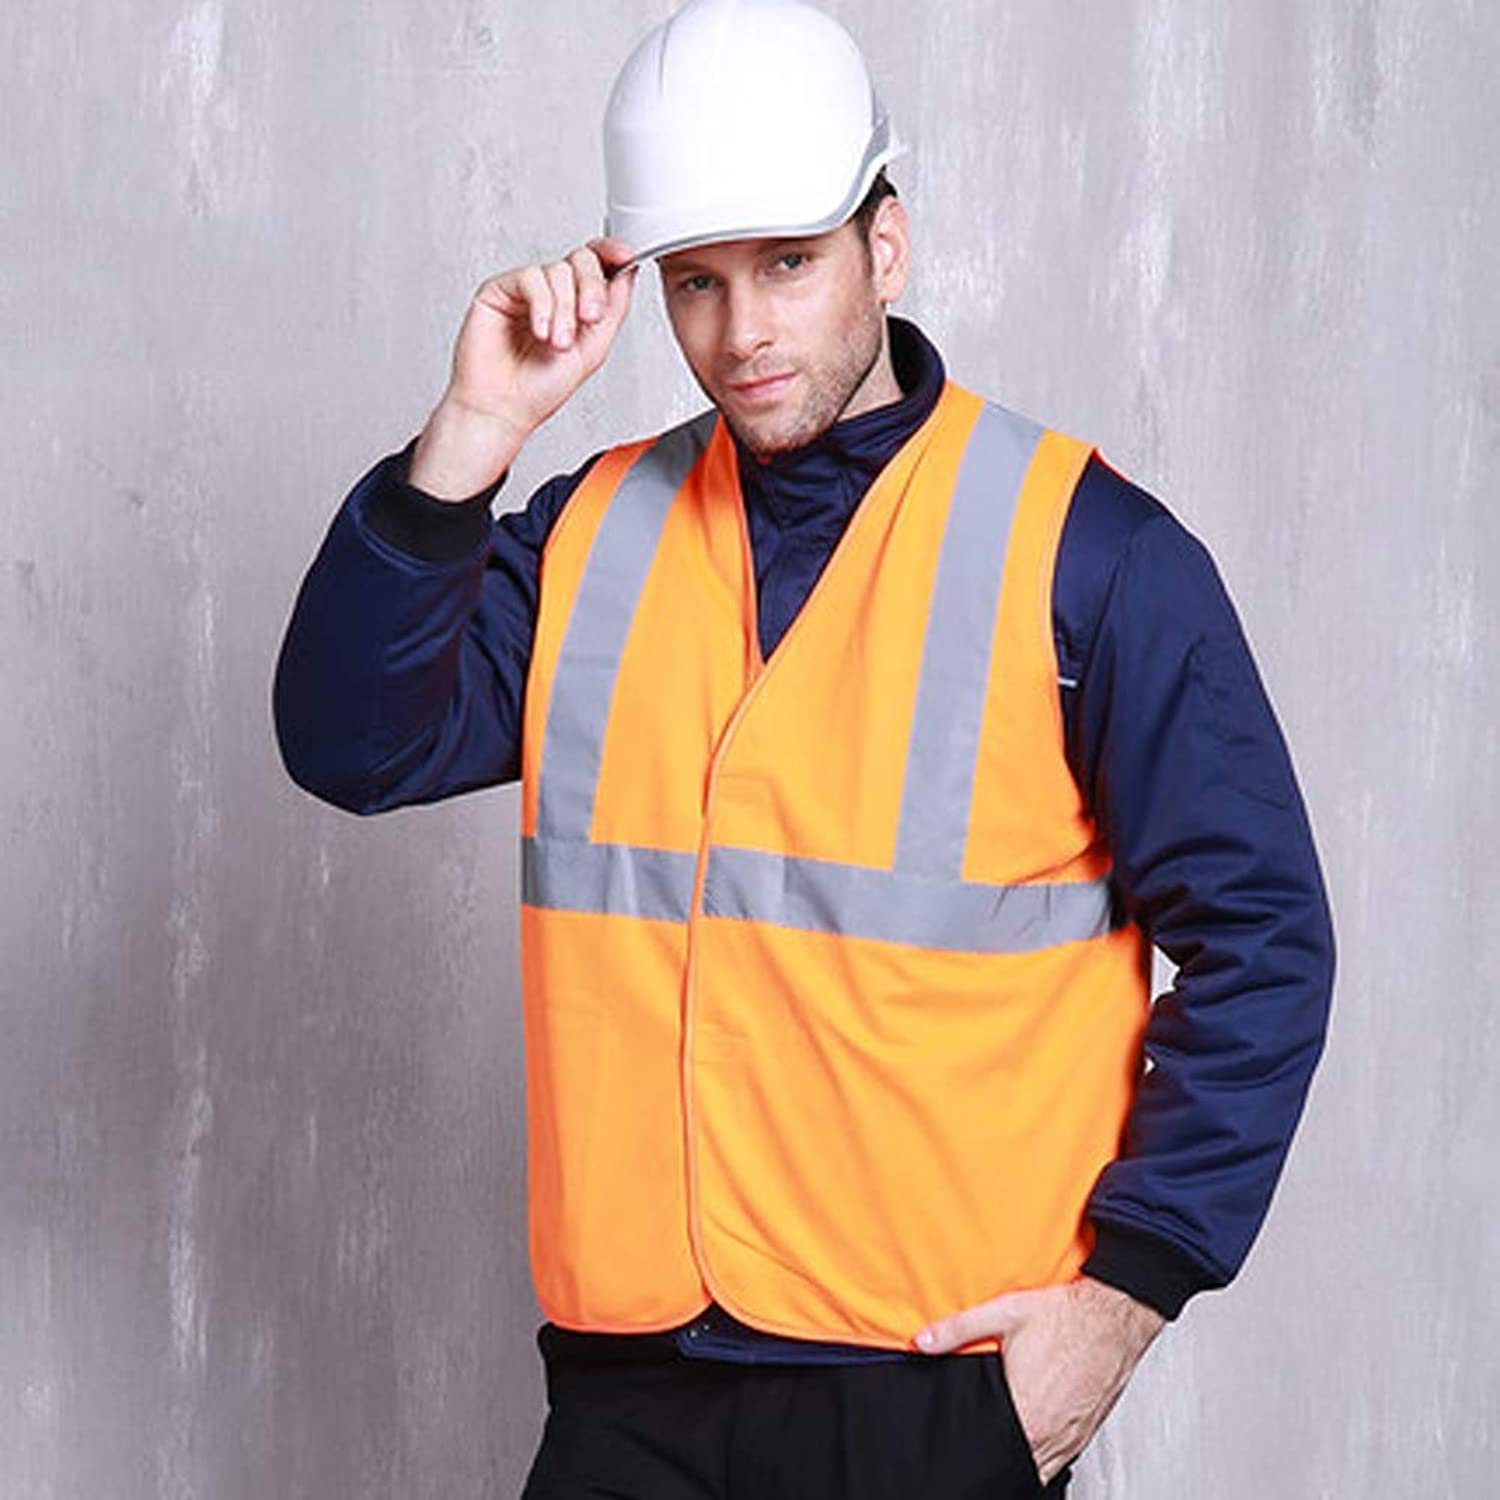 GLJJQMY Reflective Vest with Visible Reflective Strips Yellow Bright for Warehouse Traffic and Parking Patrols Reflective Vests (color   orange, Size   165cm)